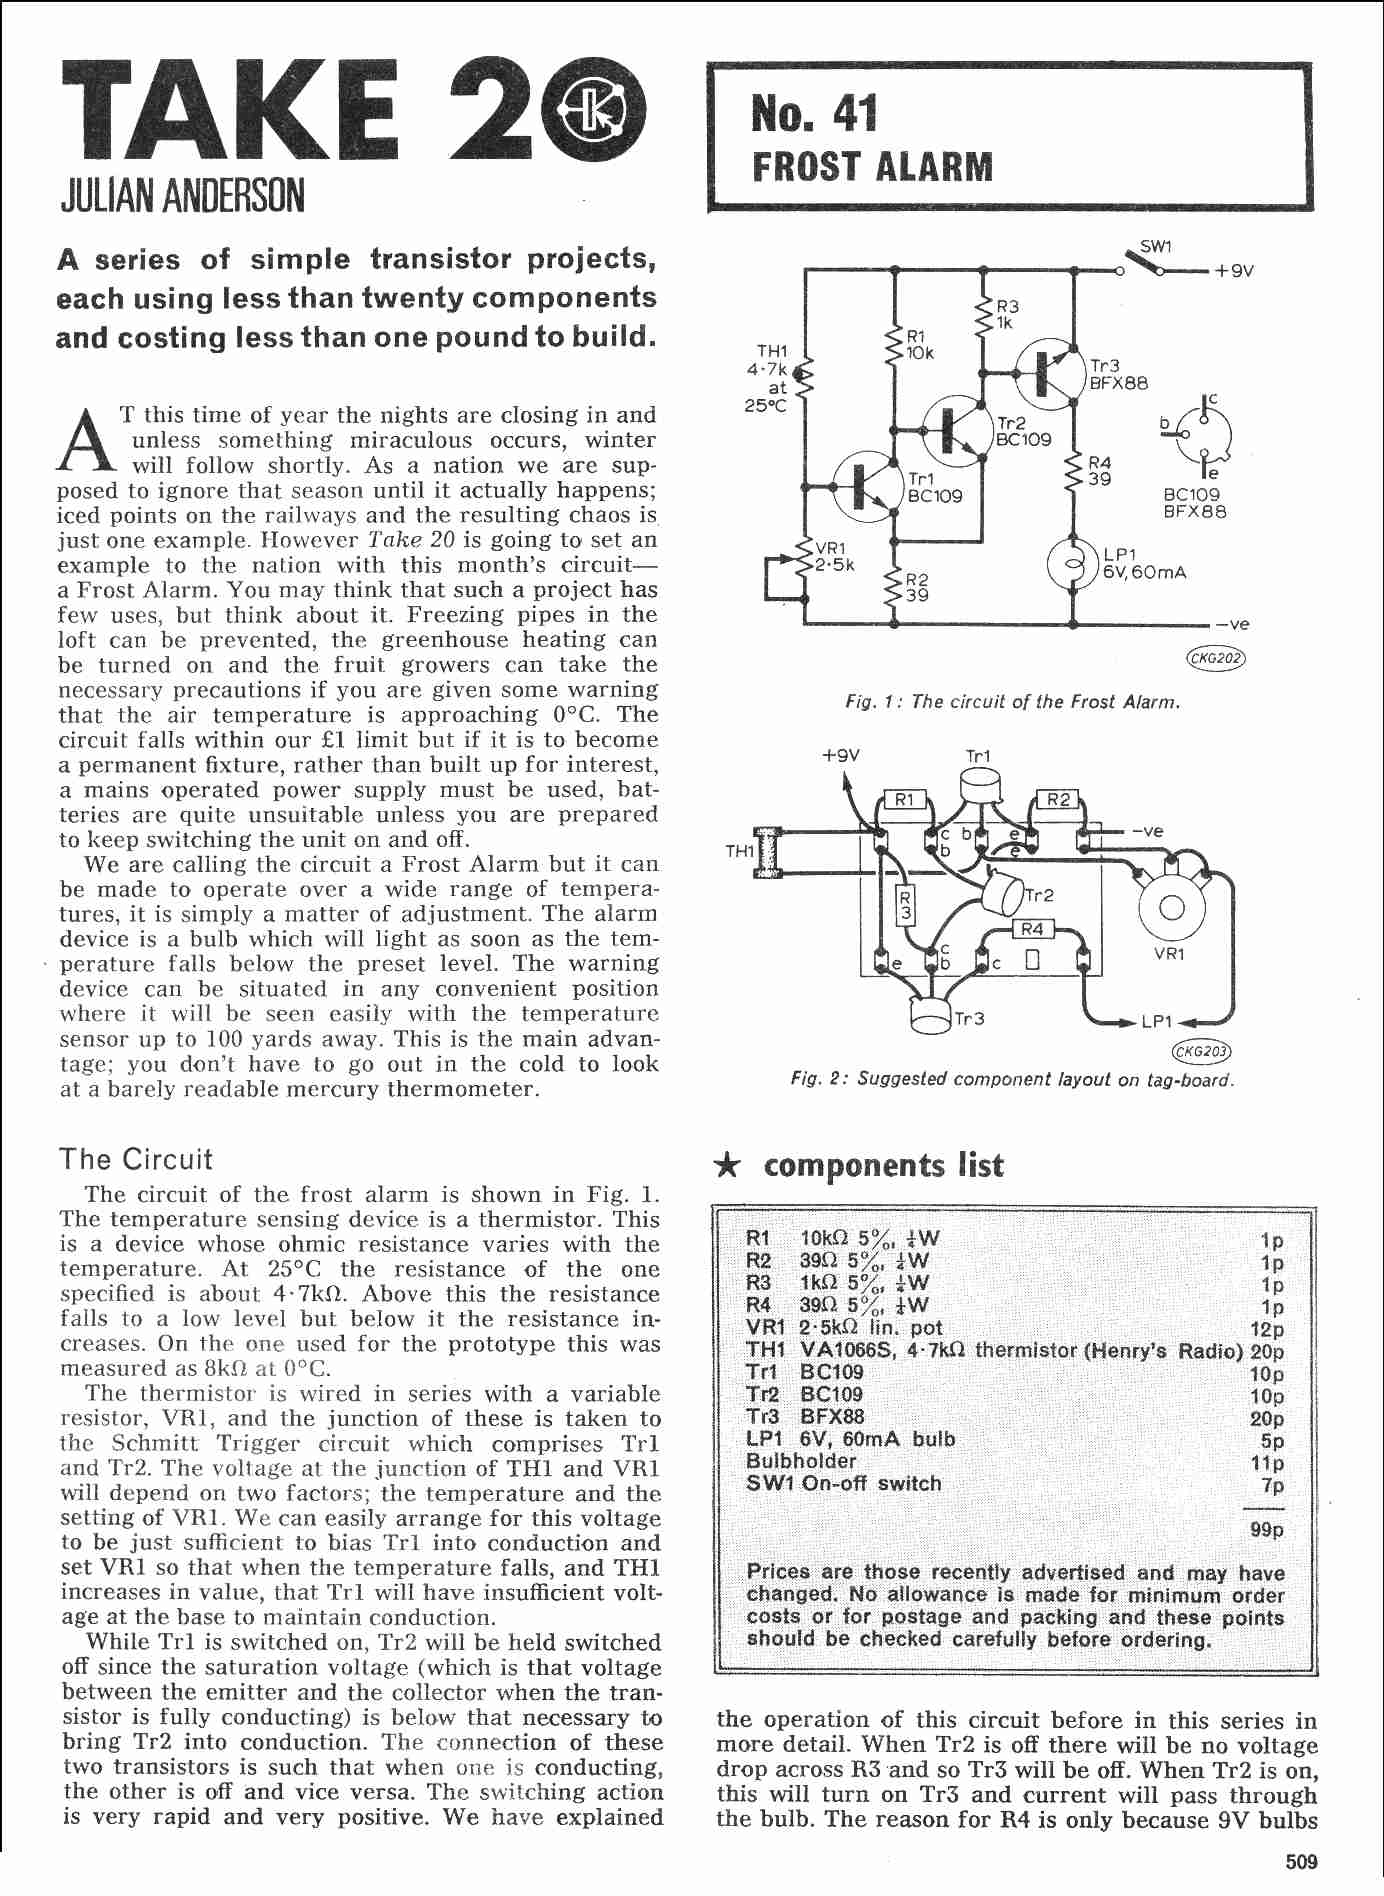 Vintage Radio And Electronics Take 20 Electronic Projects Frost Alarm